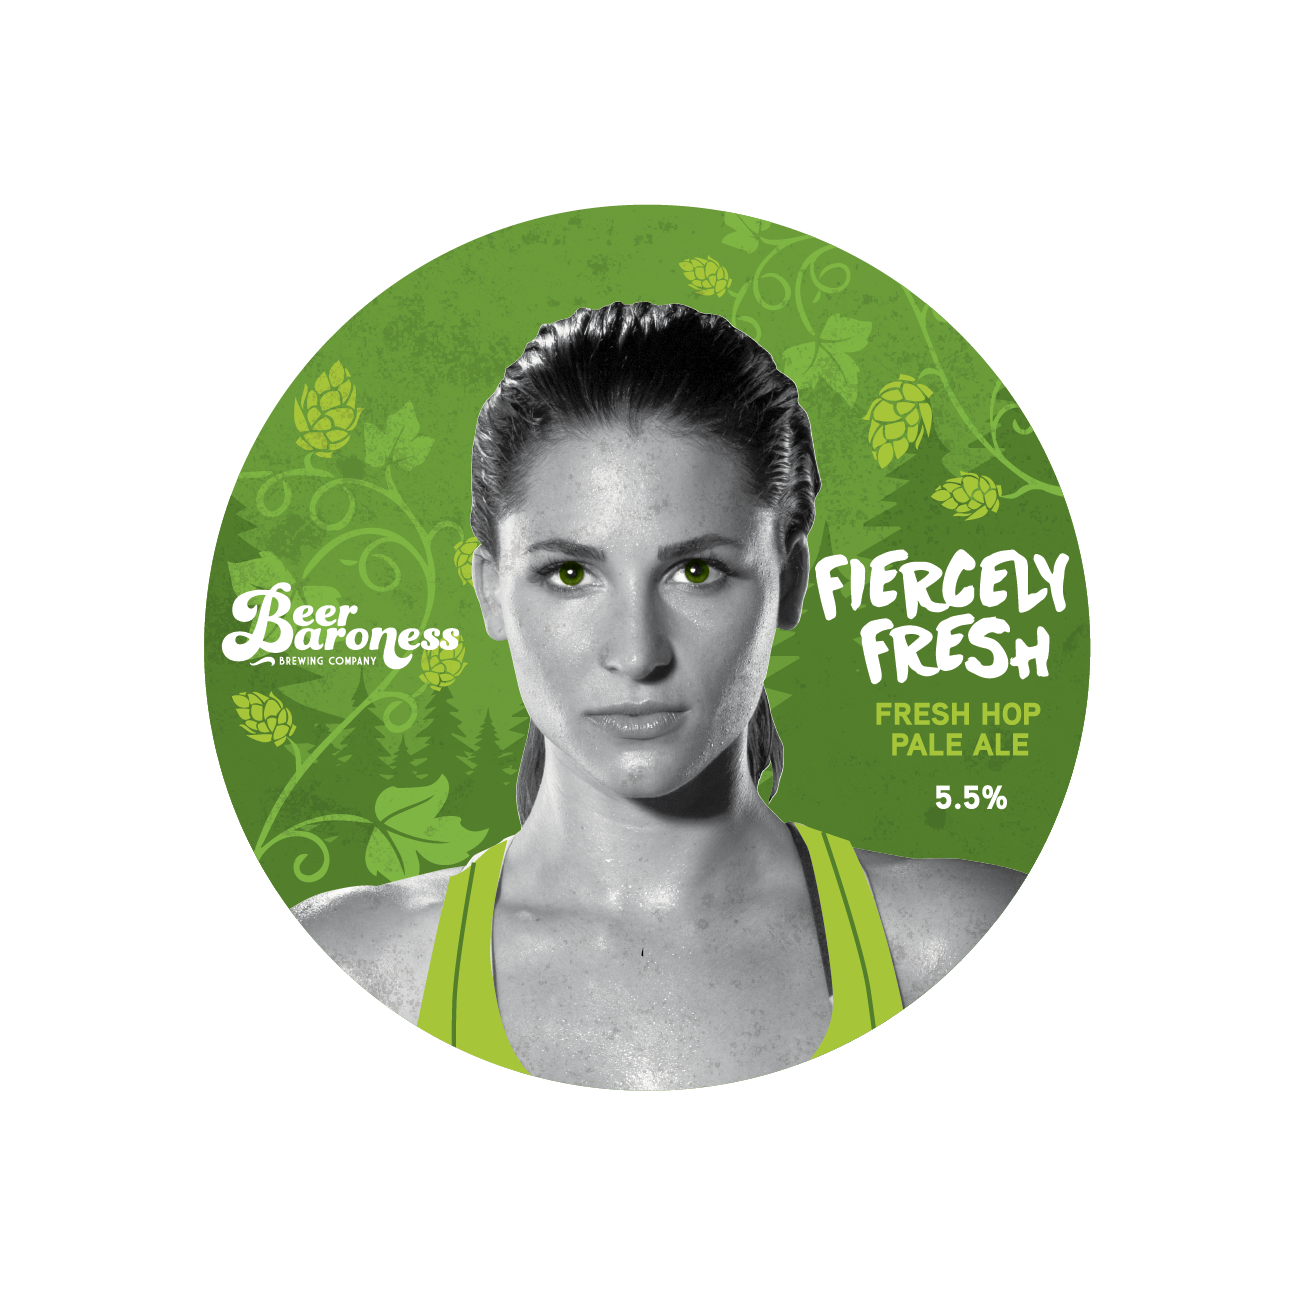 DD004735 Beer Baroness Fresh Hop Tap Badge - Fiercely Fresh Supply T2P.- Clipped.png